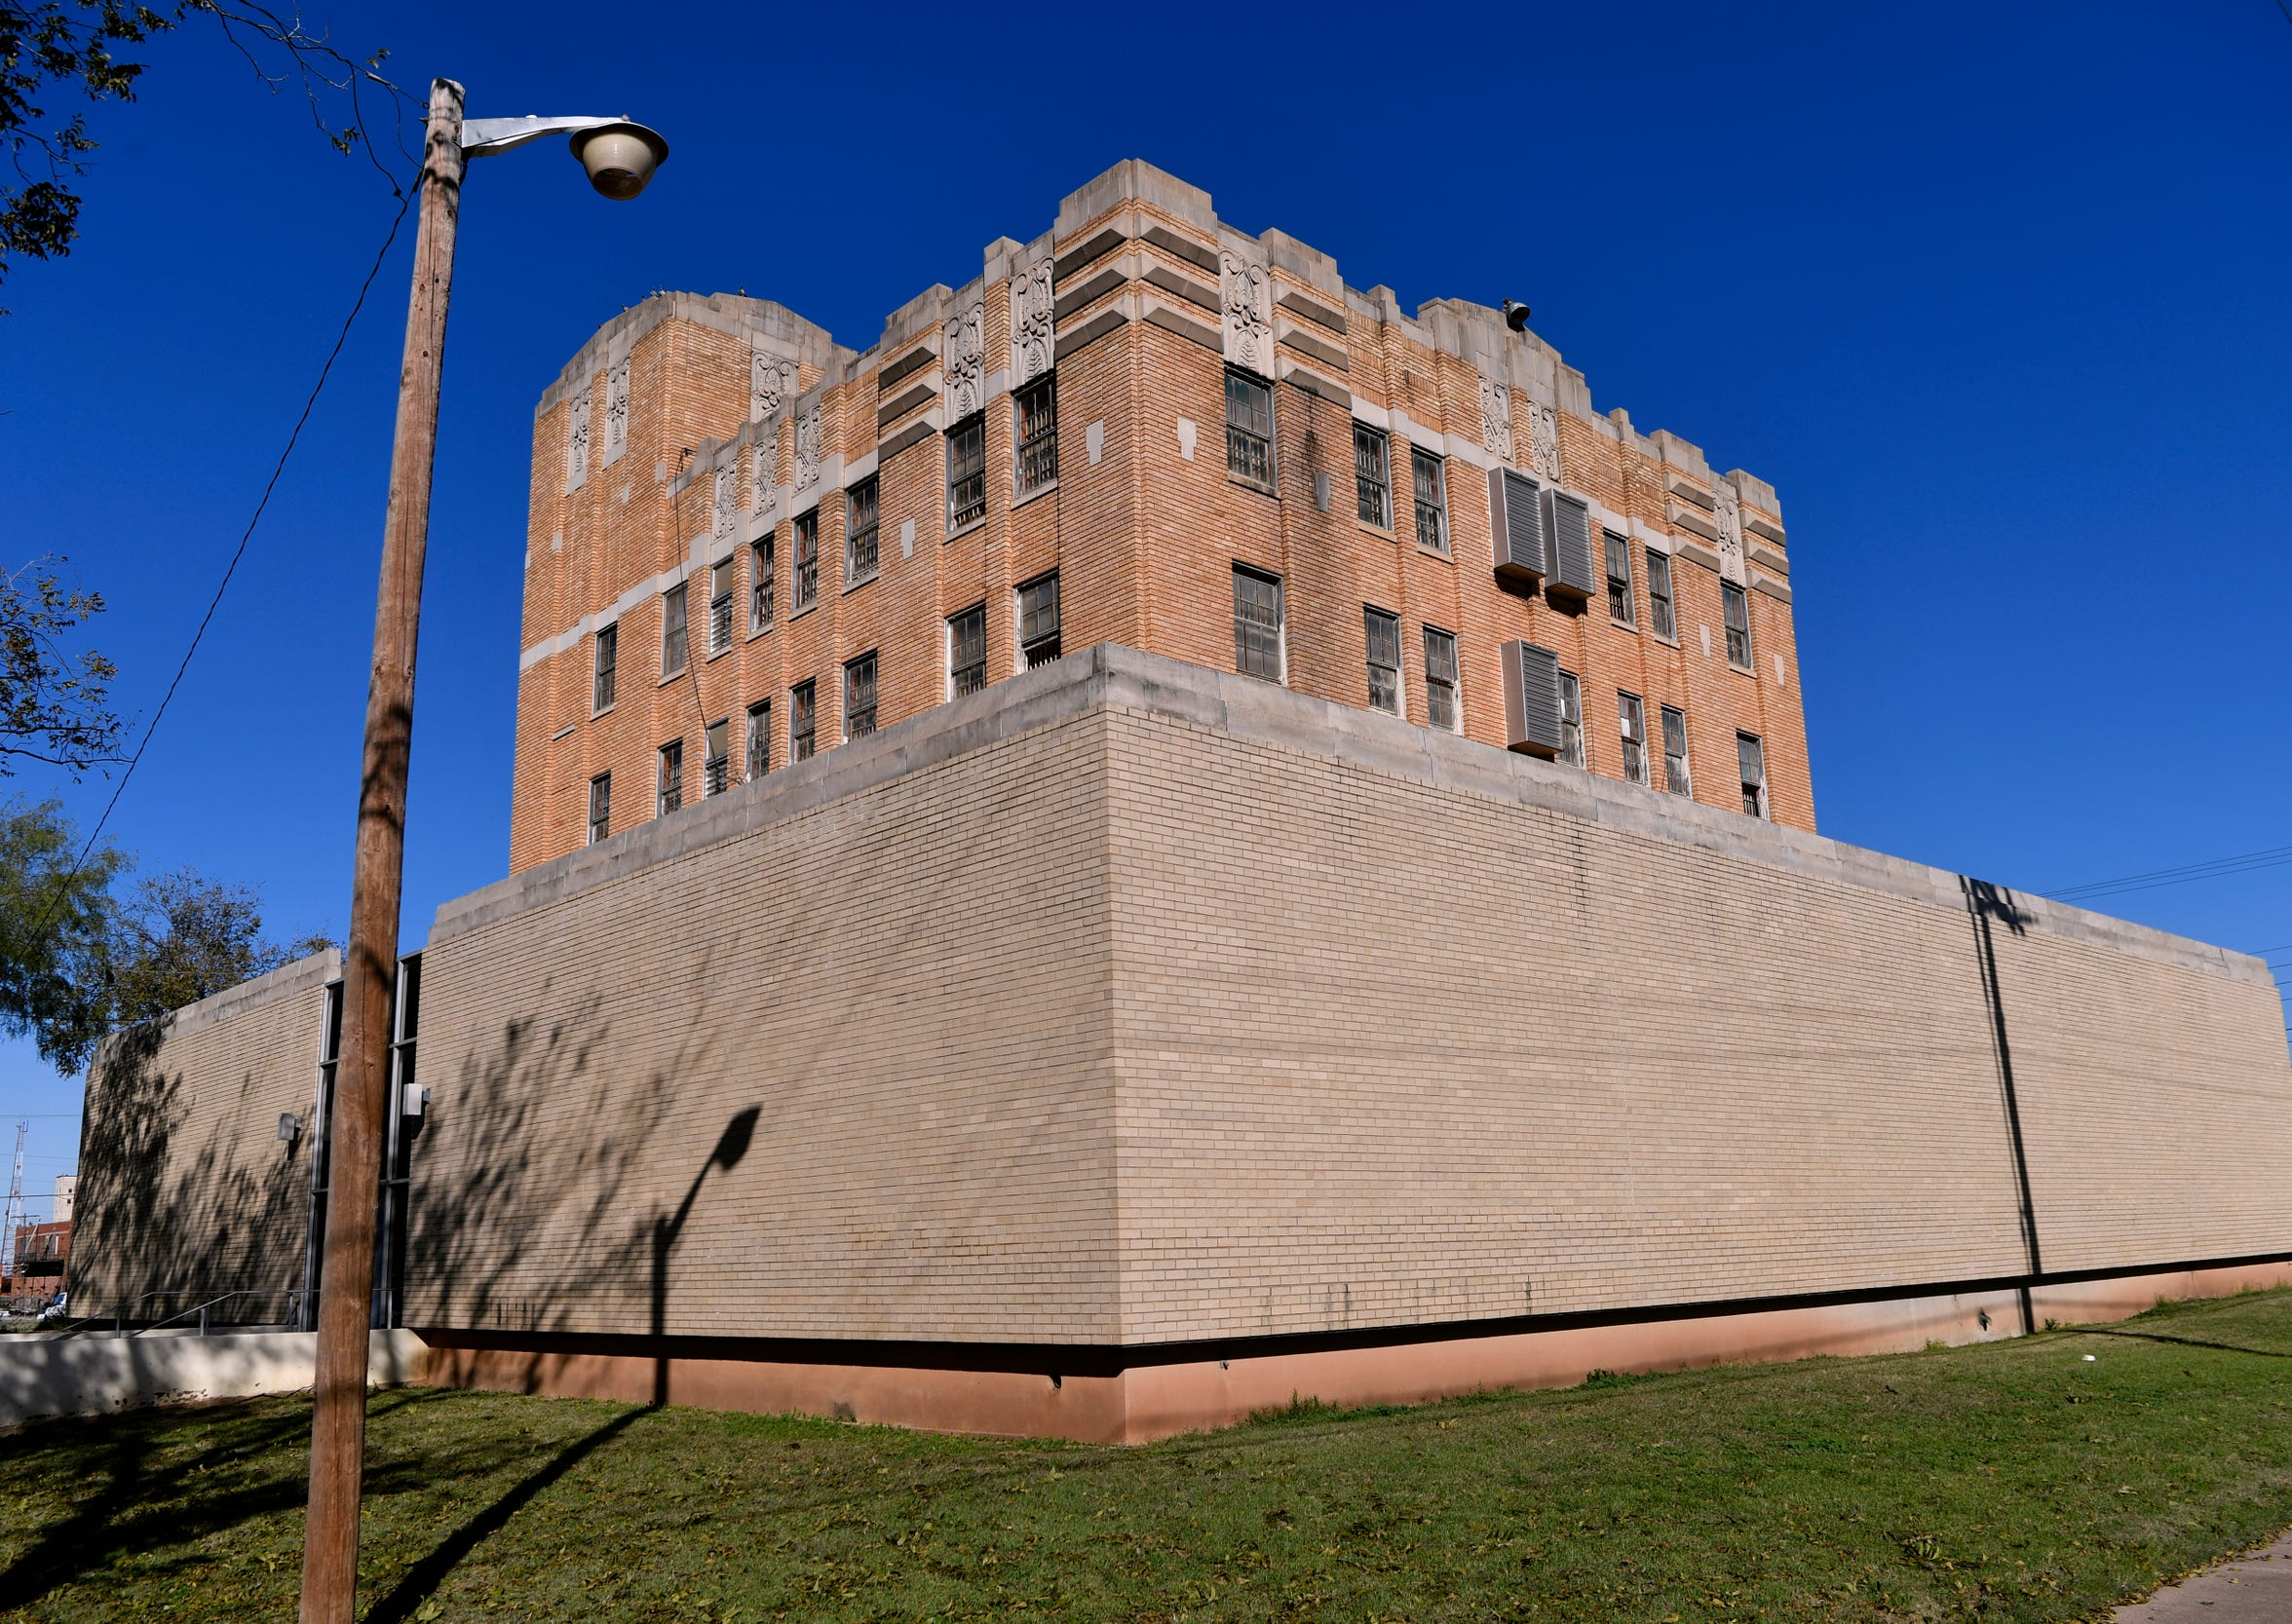 David S. Castle designed churches and schools, but there was a need for buildings for those straying from the chosen path, such as the  former Taylor County Jail. The windowless first-floor was not part of the original building.